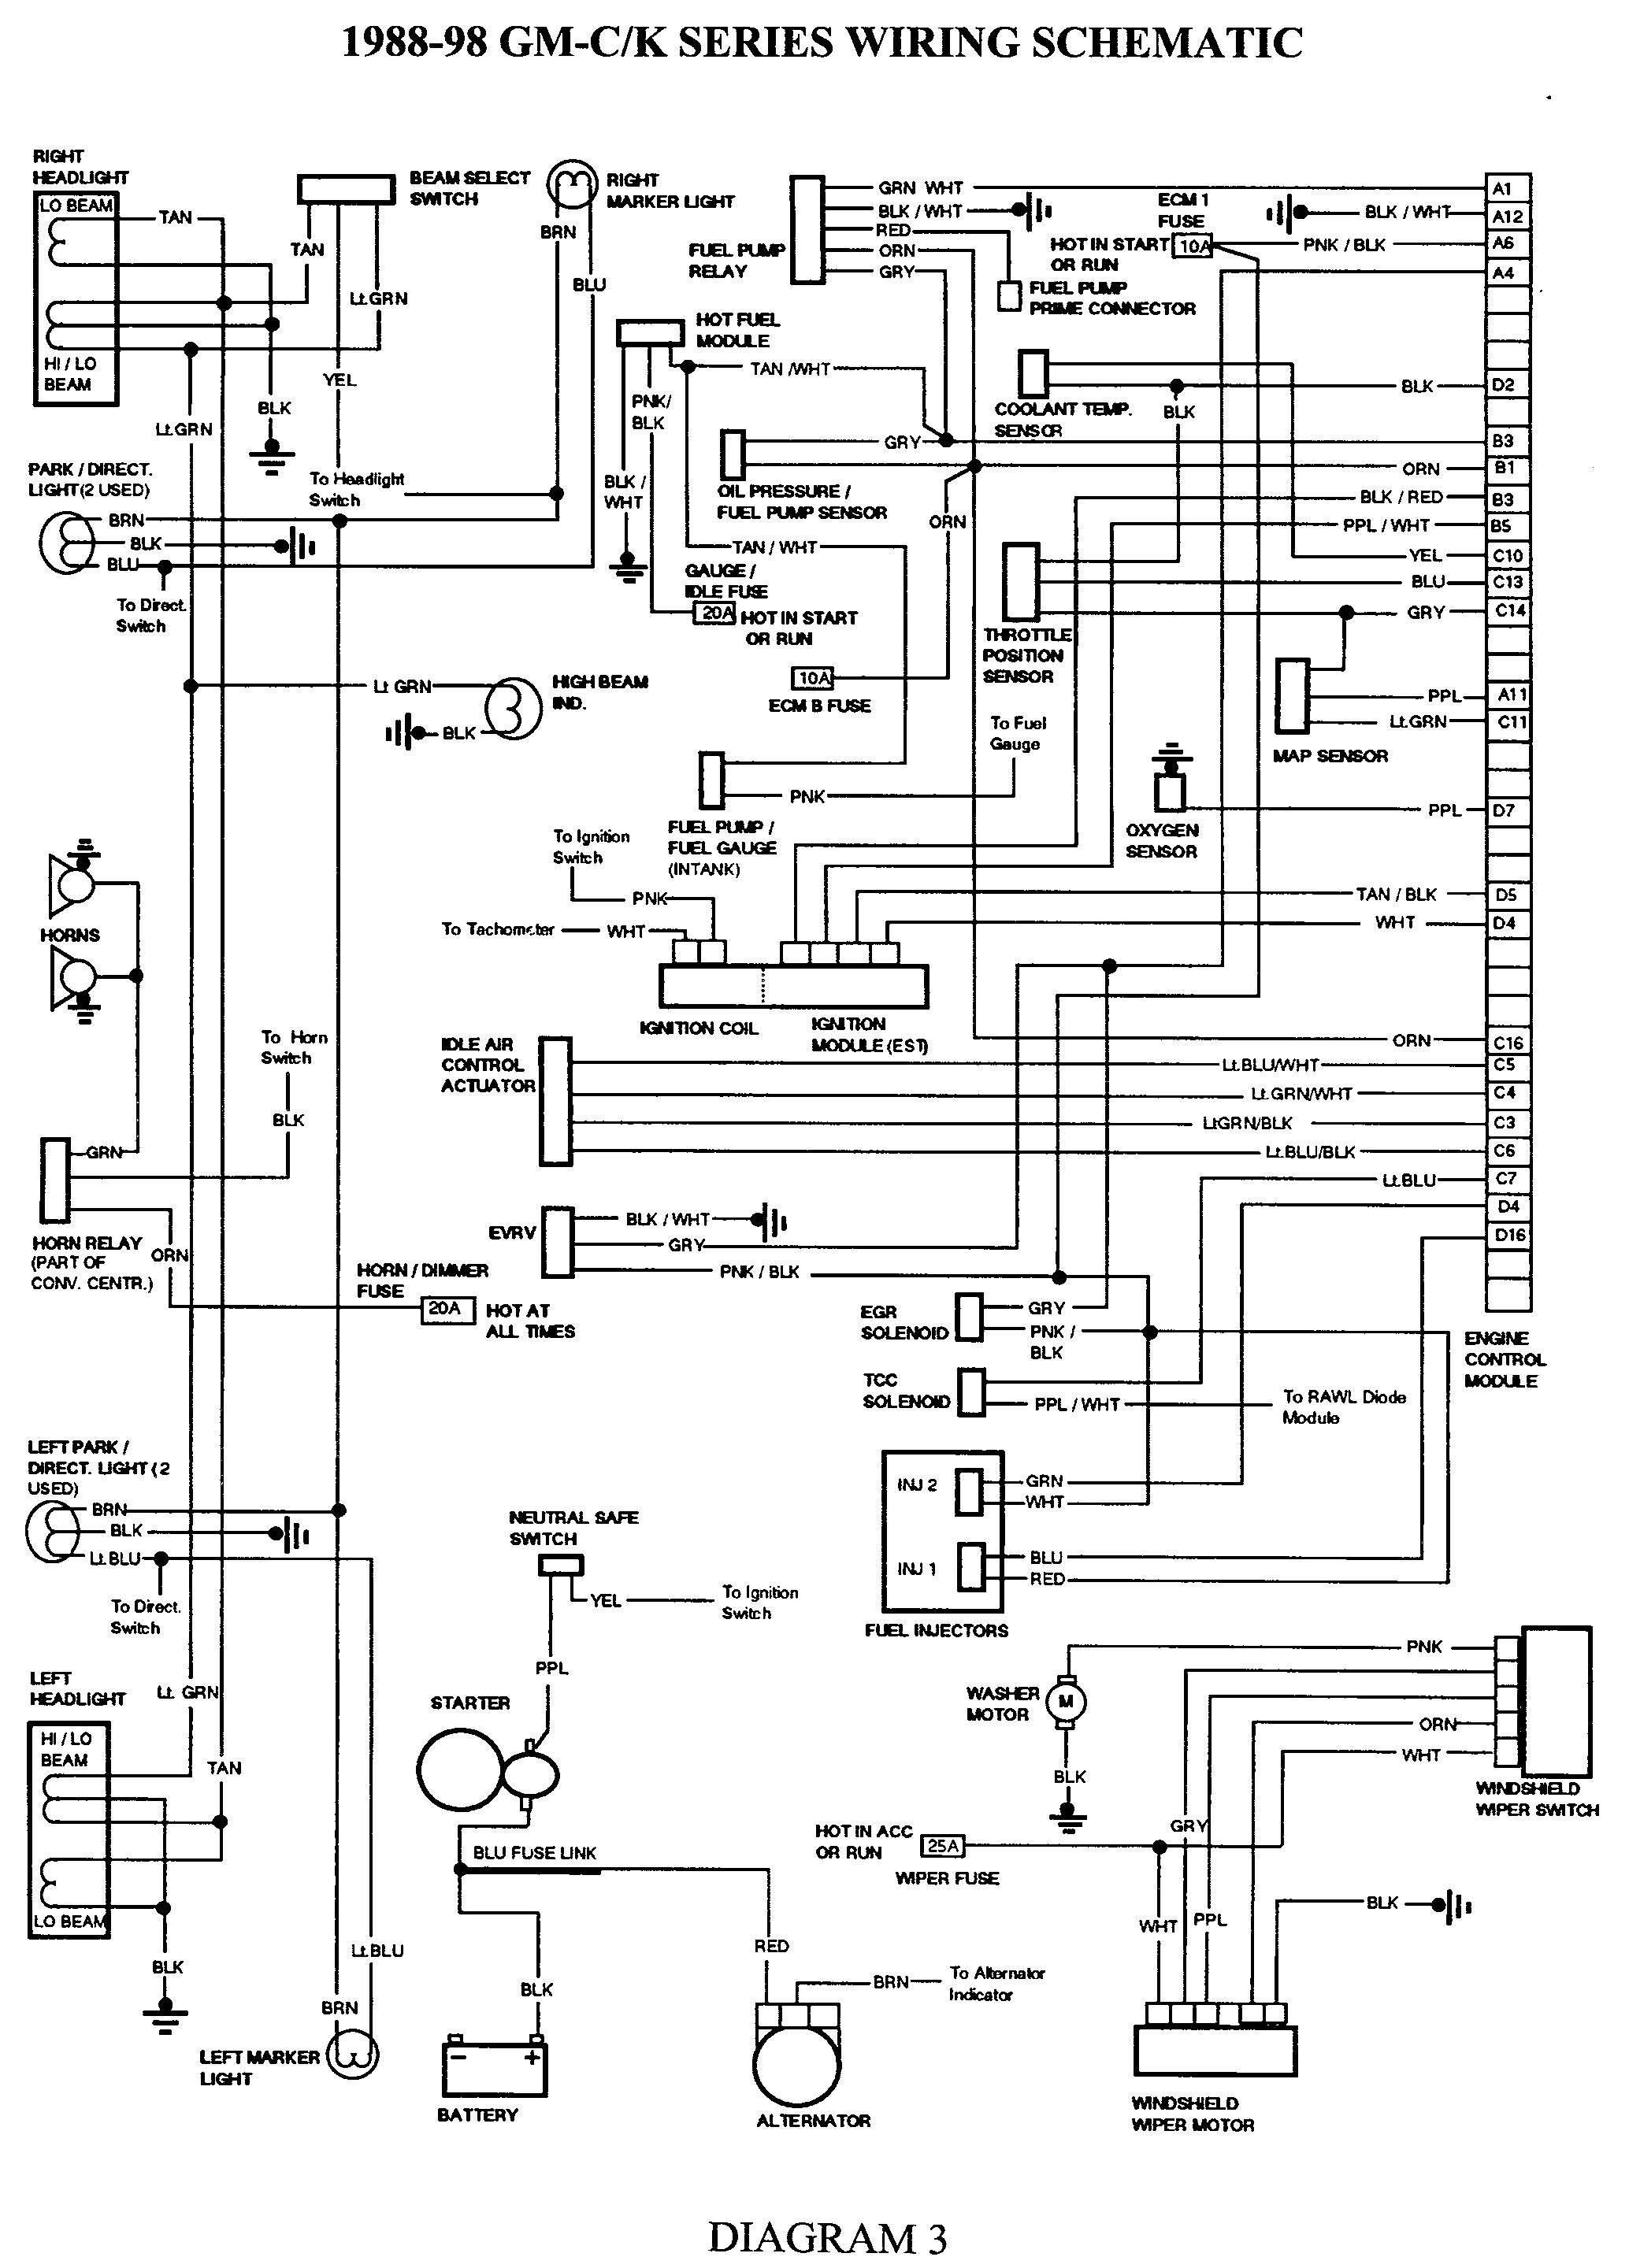 Fresh Wiring Diagram For Hazard Light Switch For Motorcycle Diagrams Digramssample Diagramimages Wi Electrical Diagram Chevy 1500 Electrical Wiring Diagram